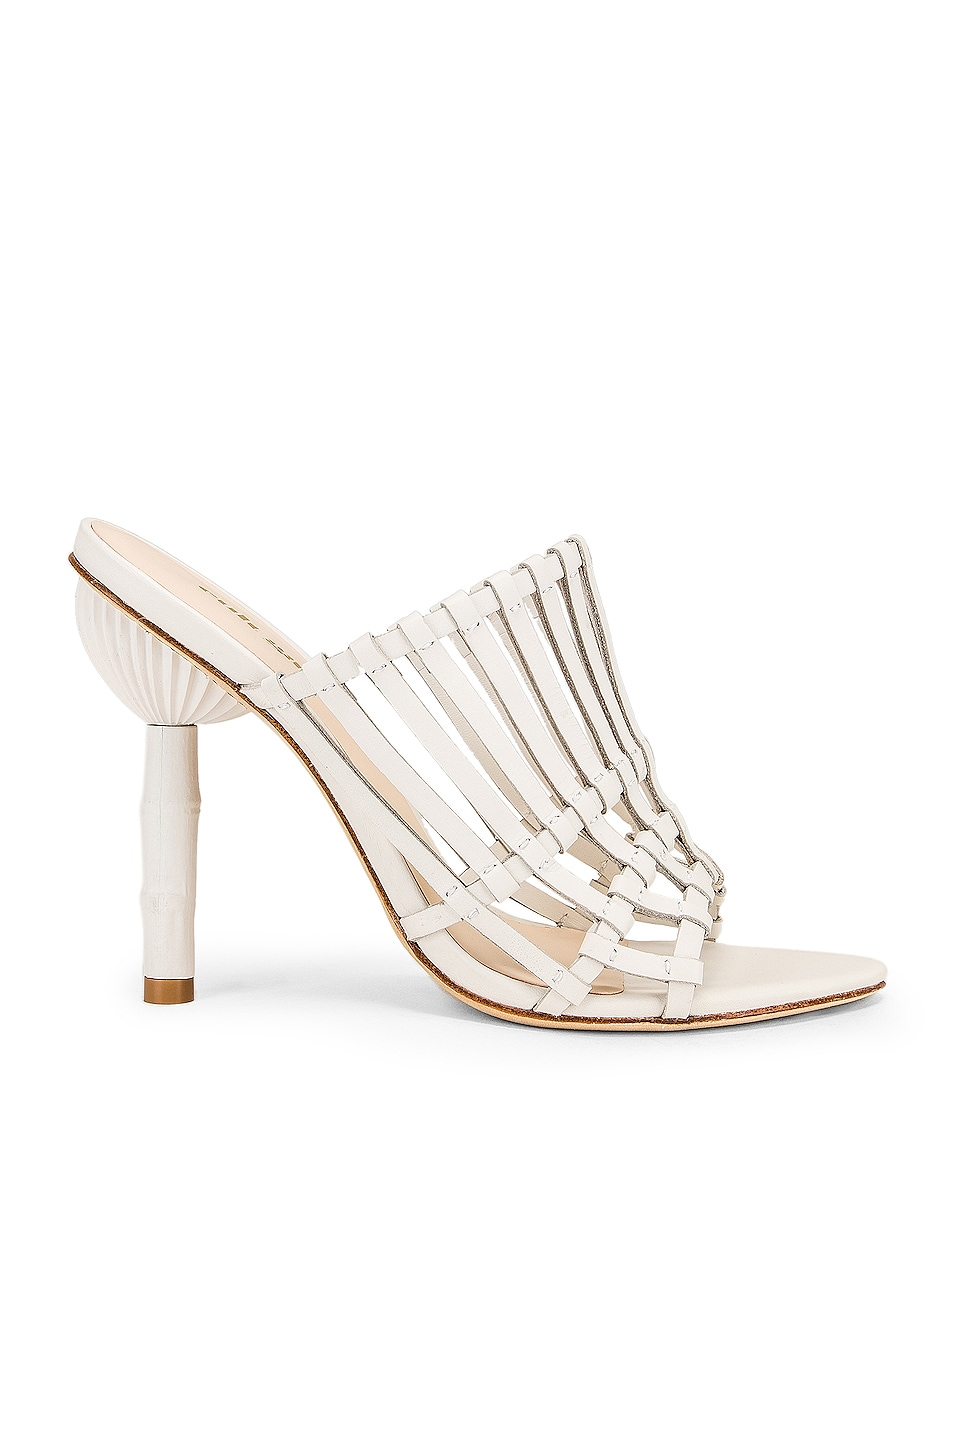 Image 1 of Cult Gaia Ark Heel in White